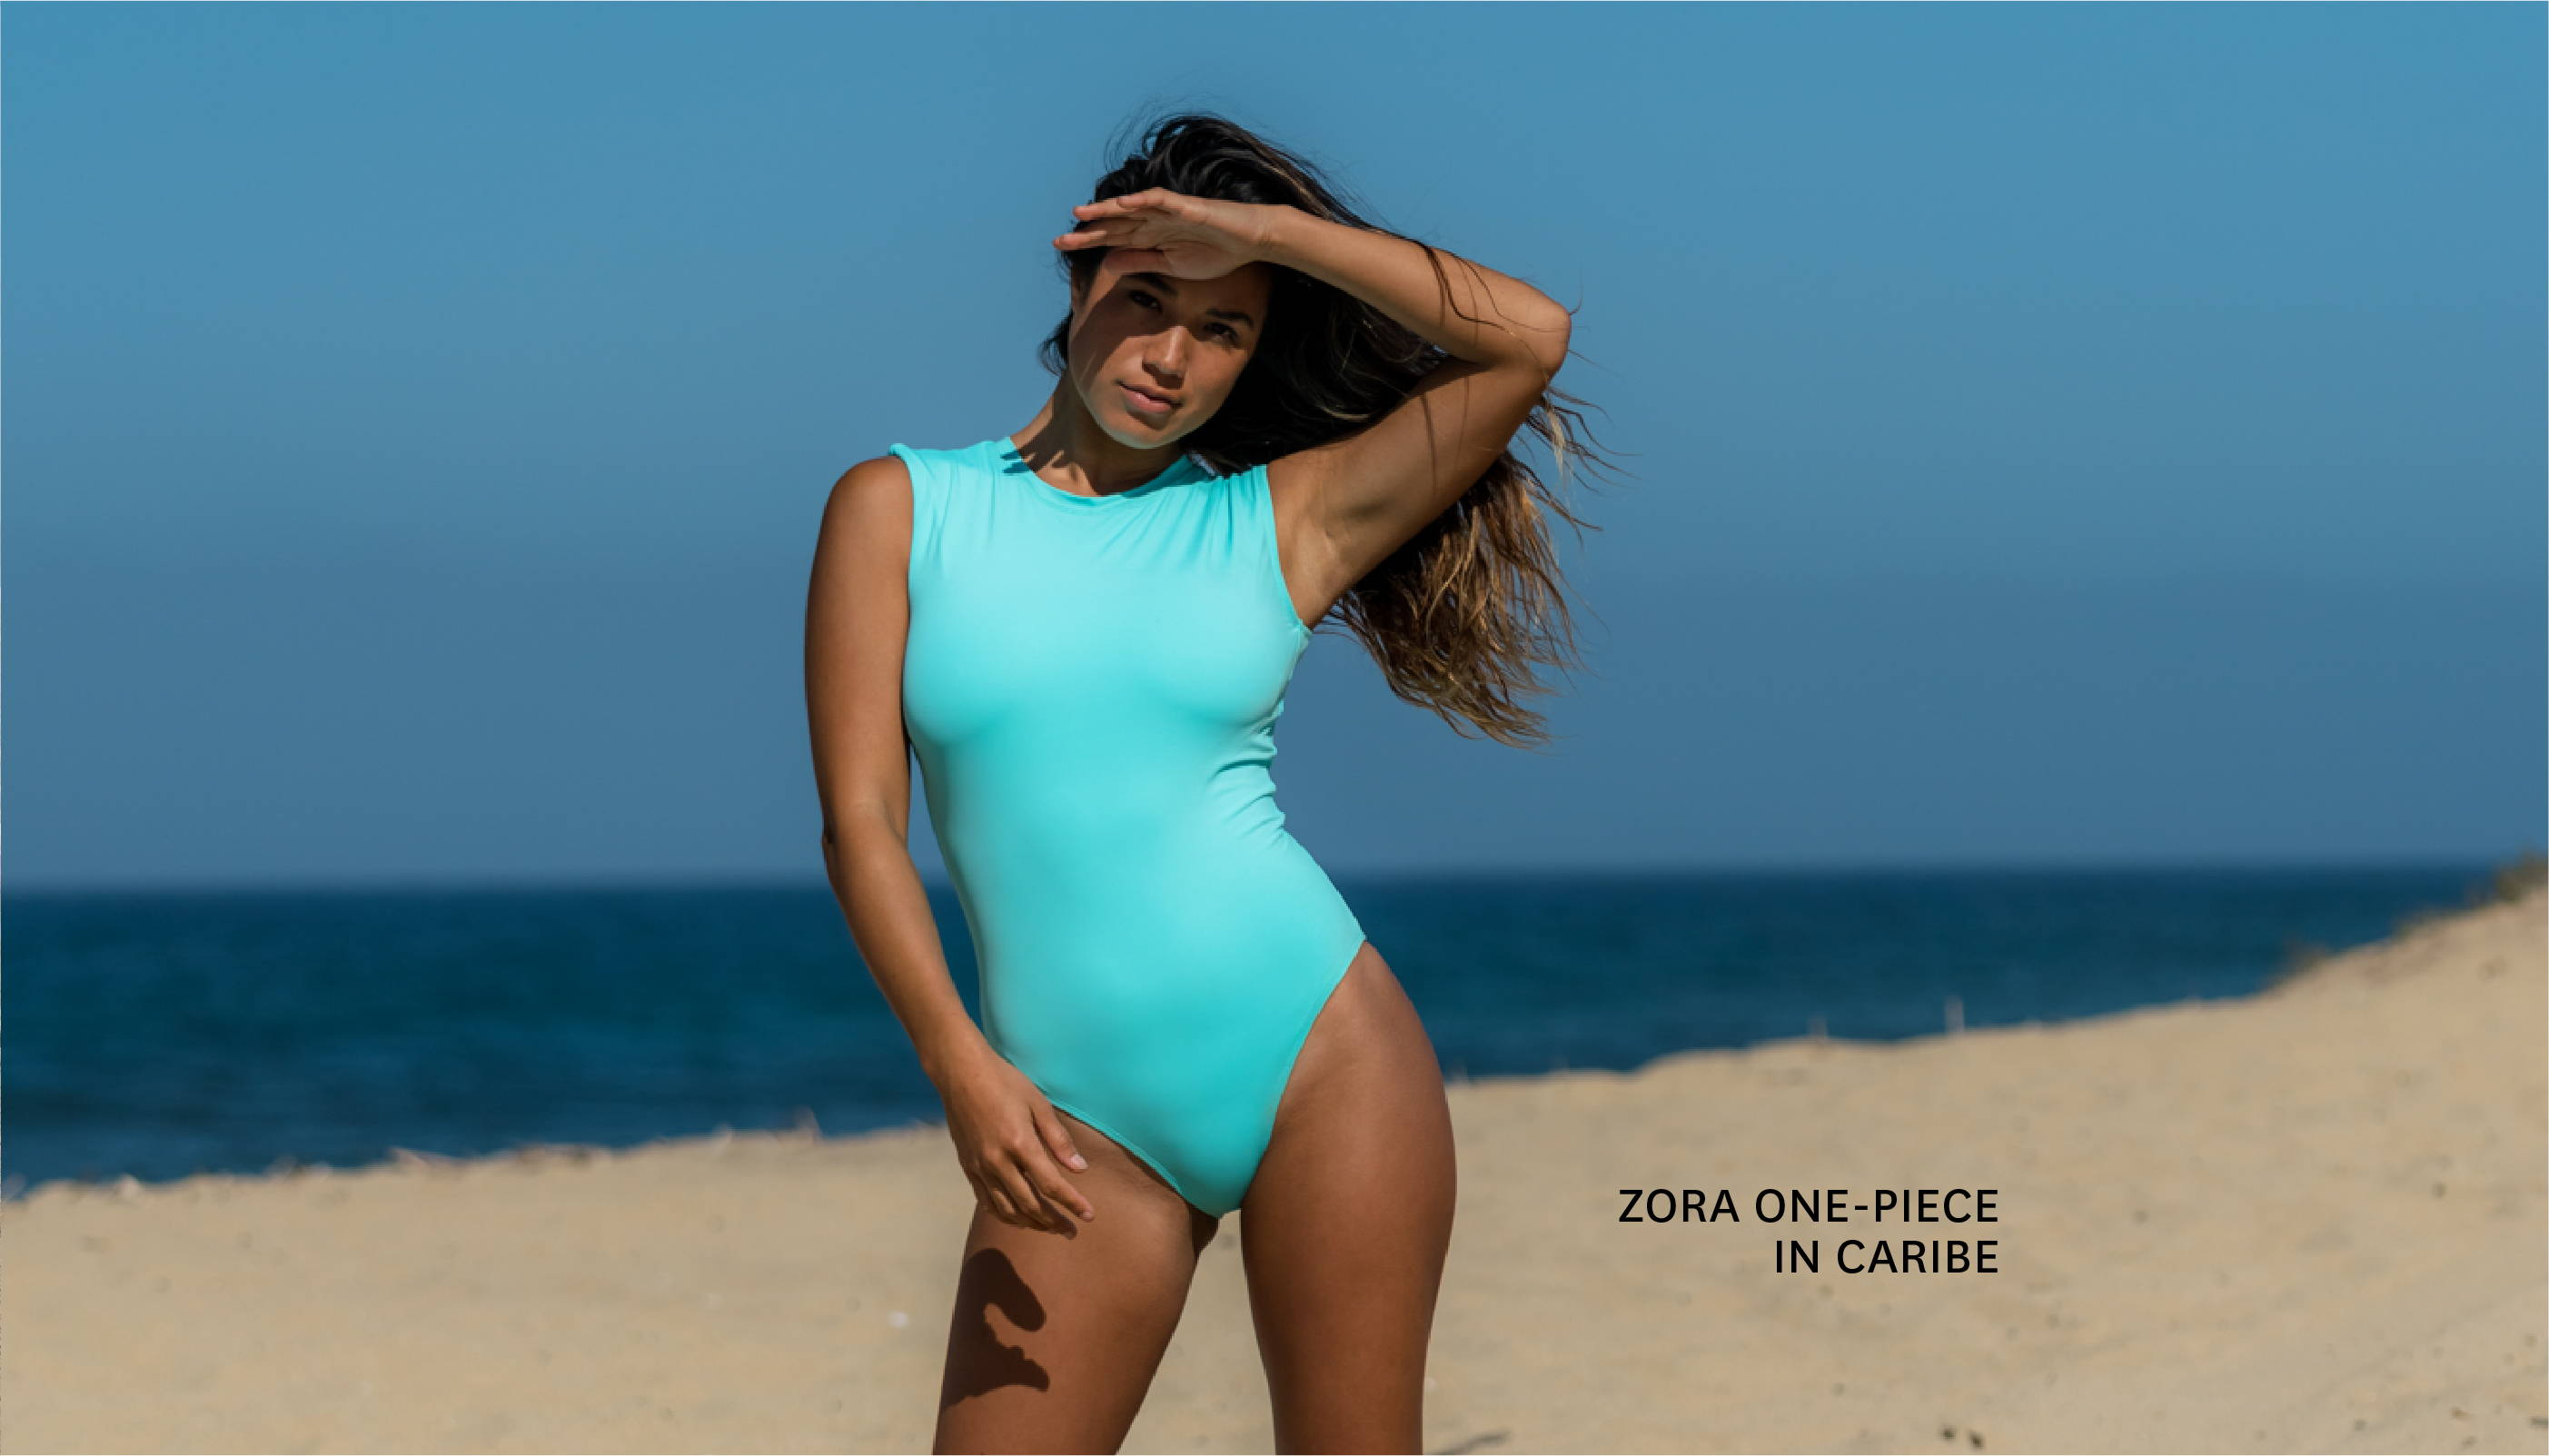 Get the ZORA ONE-PIECE in CARIBE!